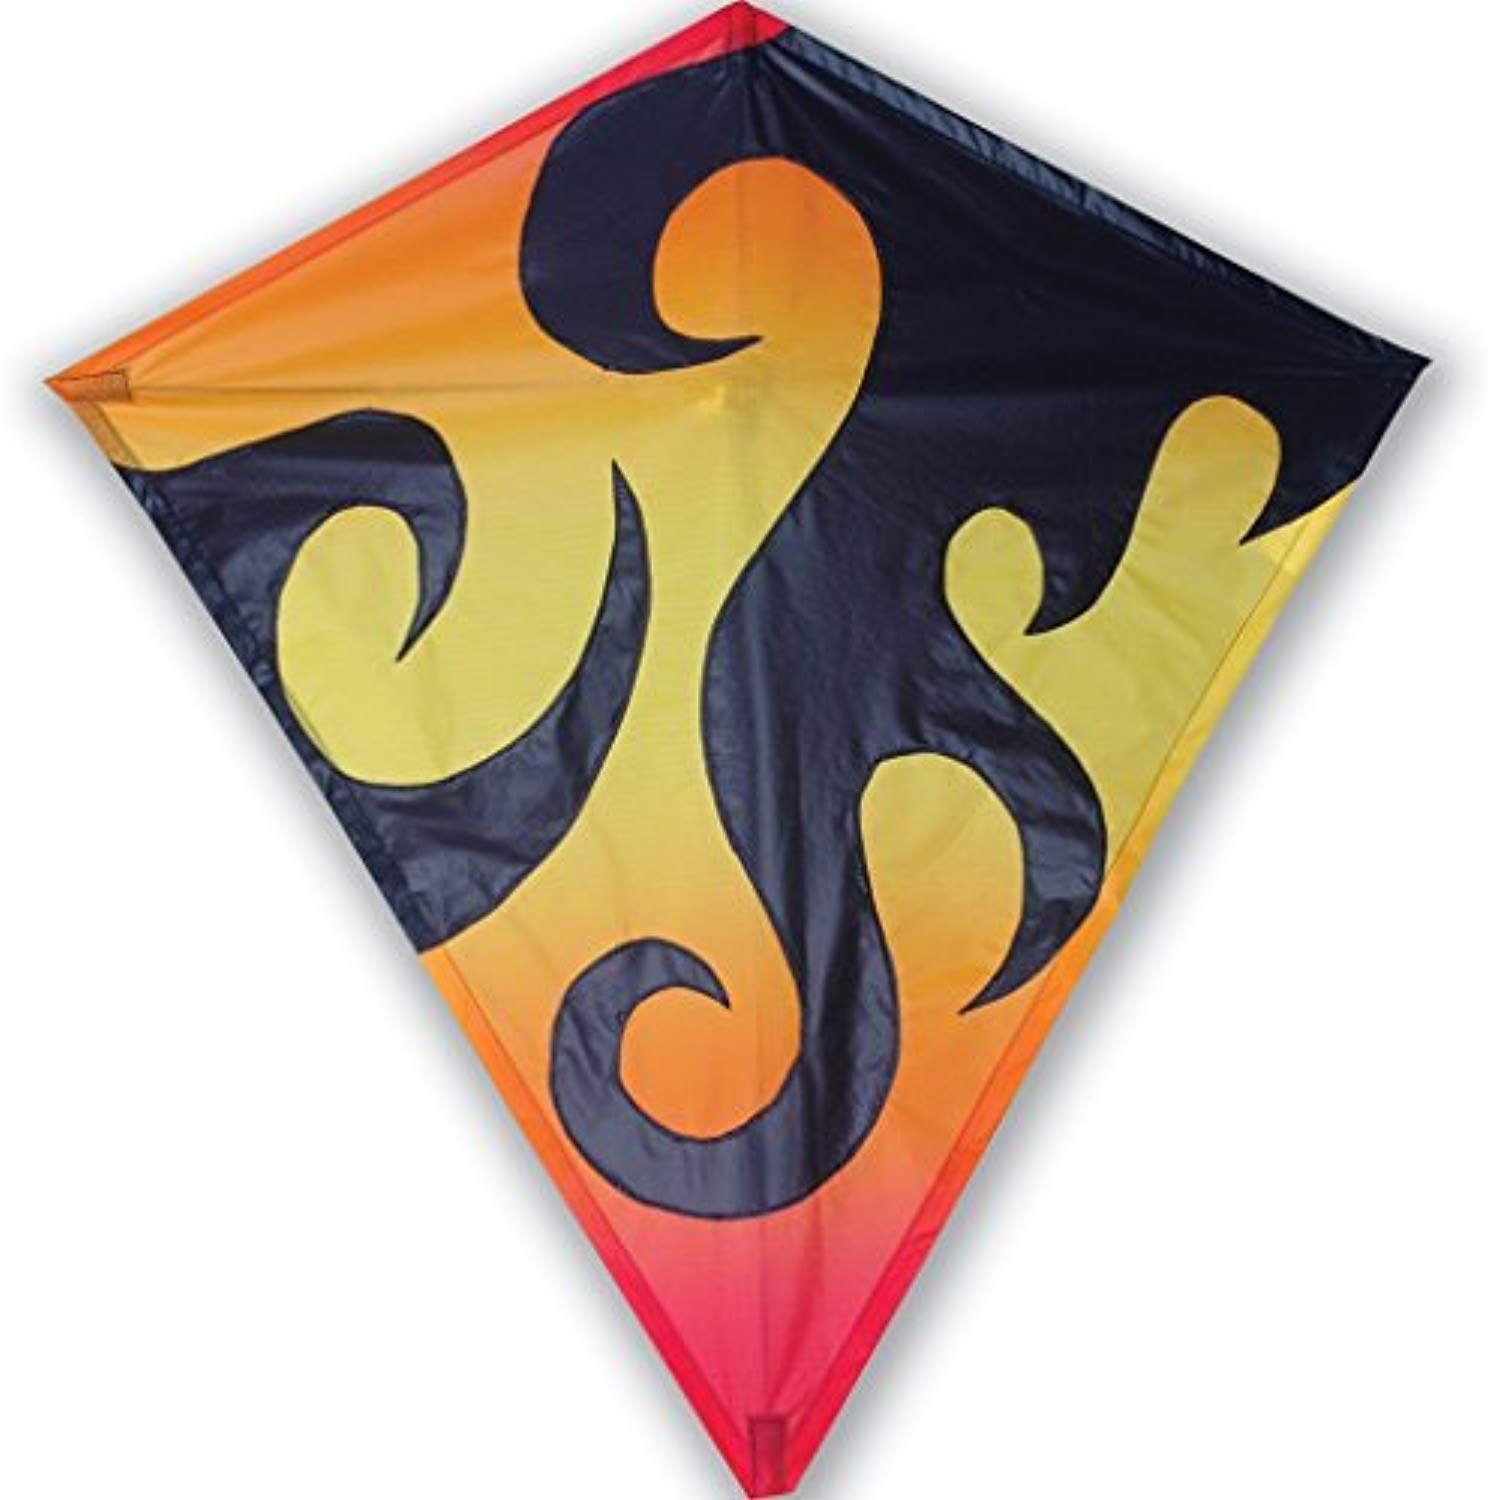 30 in. Diamond - caliente Flames by PREMIER KITES & DESIGNS